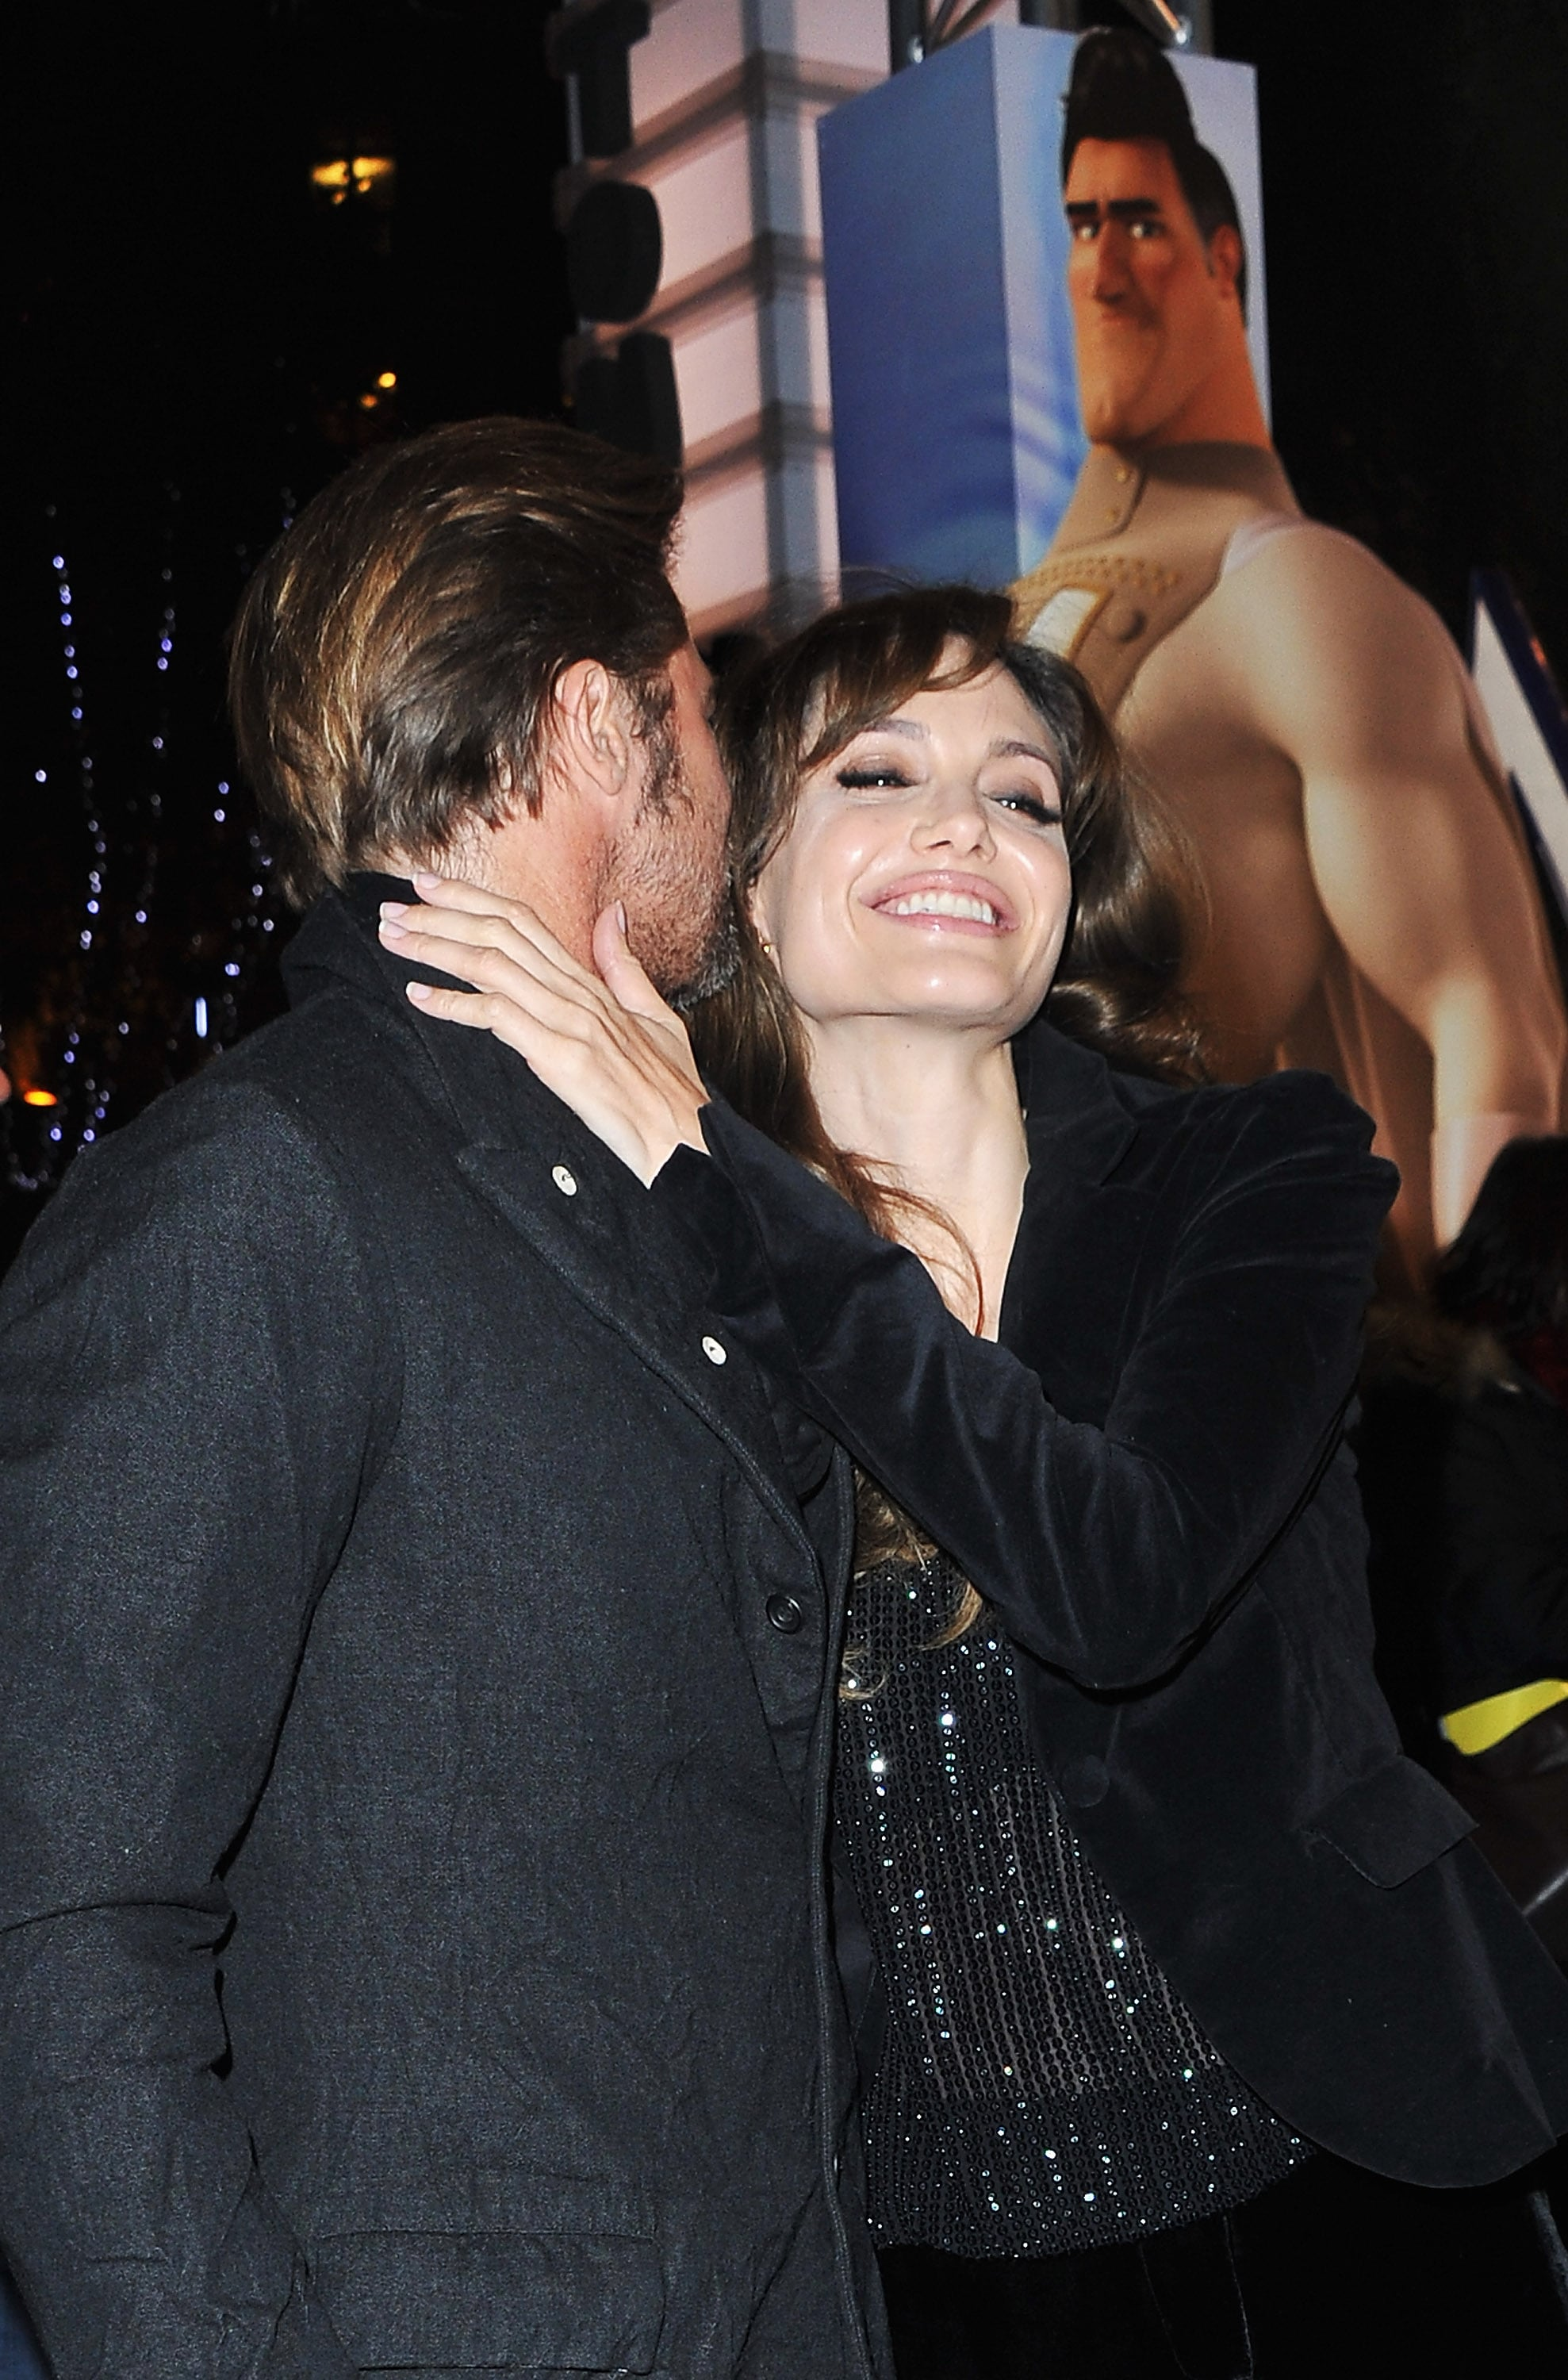 The couple shared a flirty moment at the Paris premiere of Brad's animated film Megamind in November 2010.